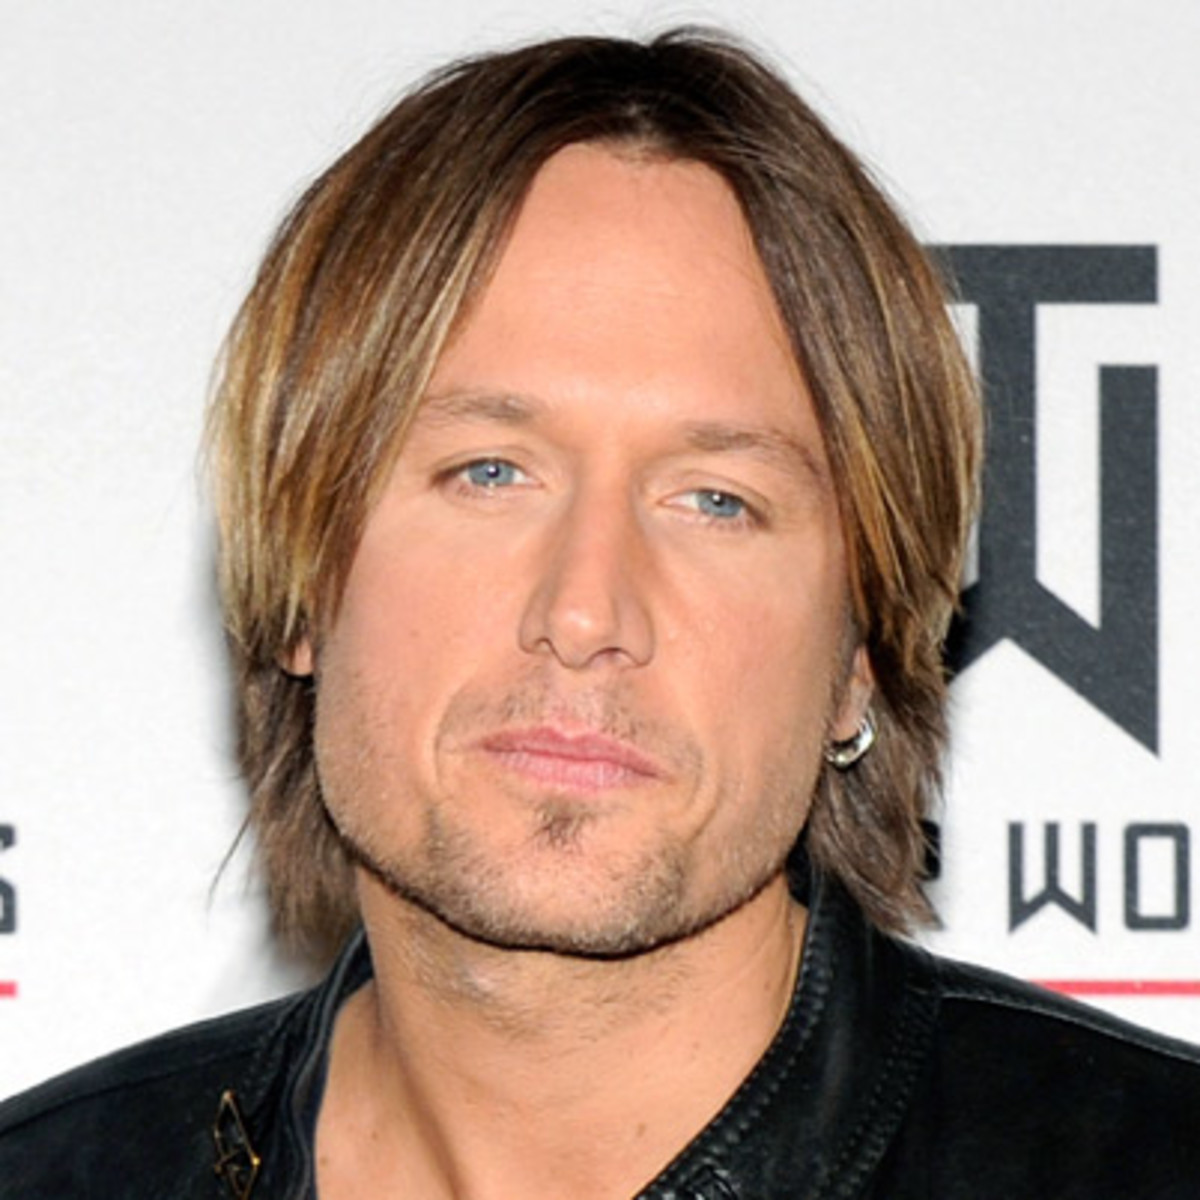 keith urban come back to me